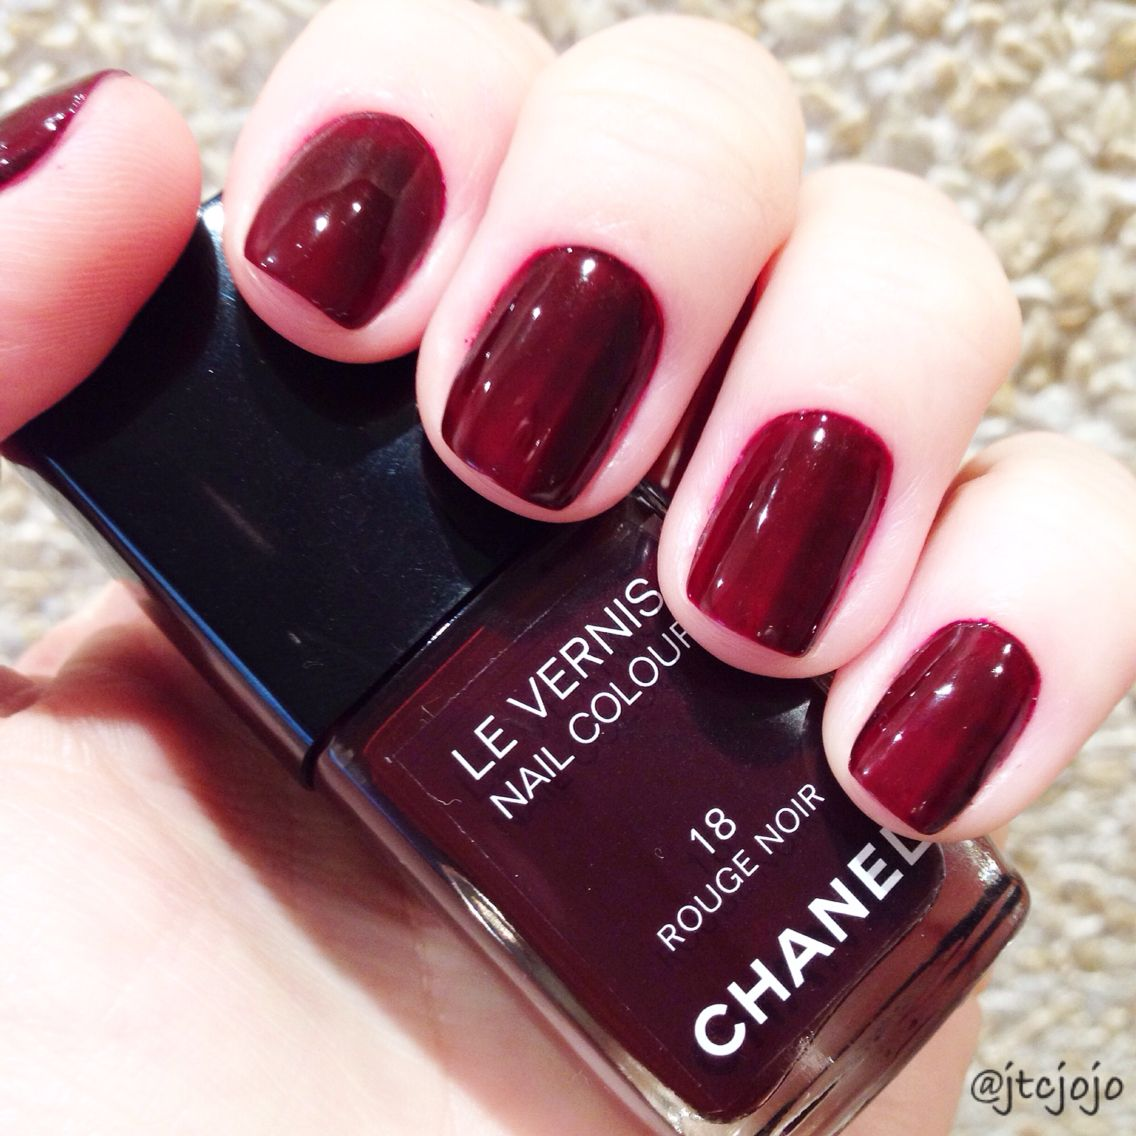 rouge noir 018 chanel nail polish collection in 2019. Black Bedroom Furniture Sets. Home Design Ideas